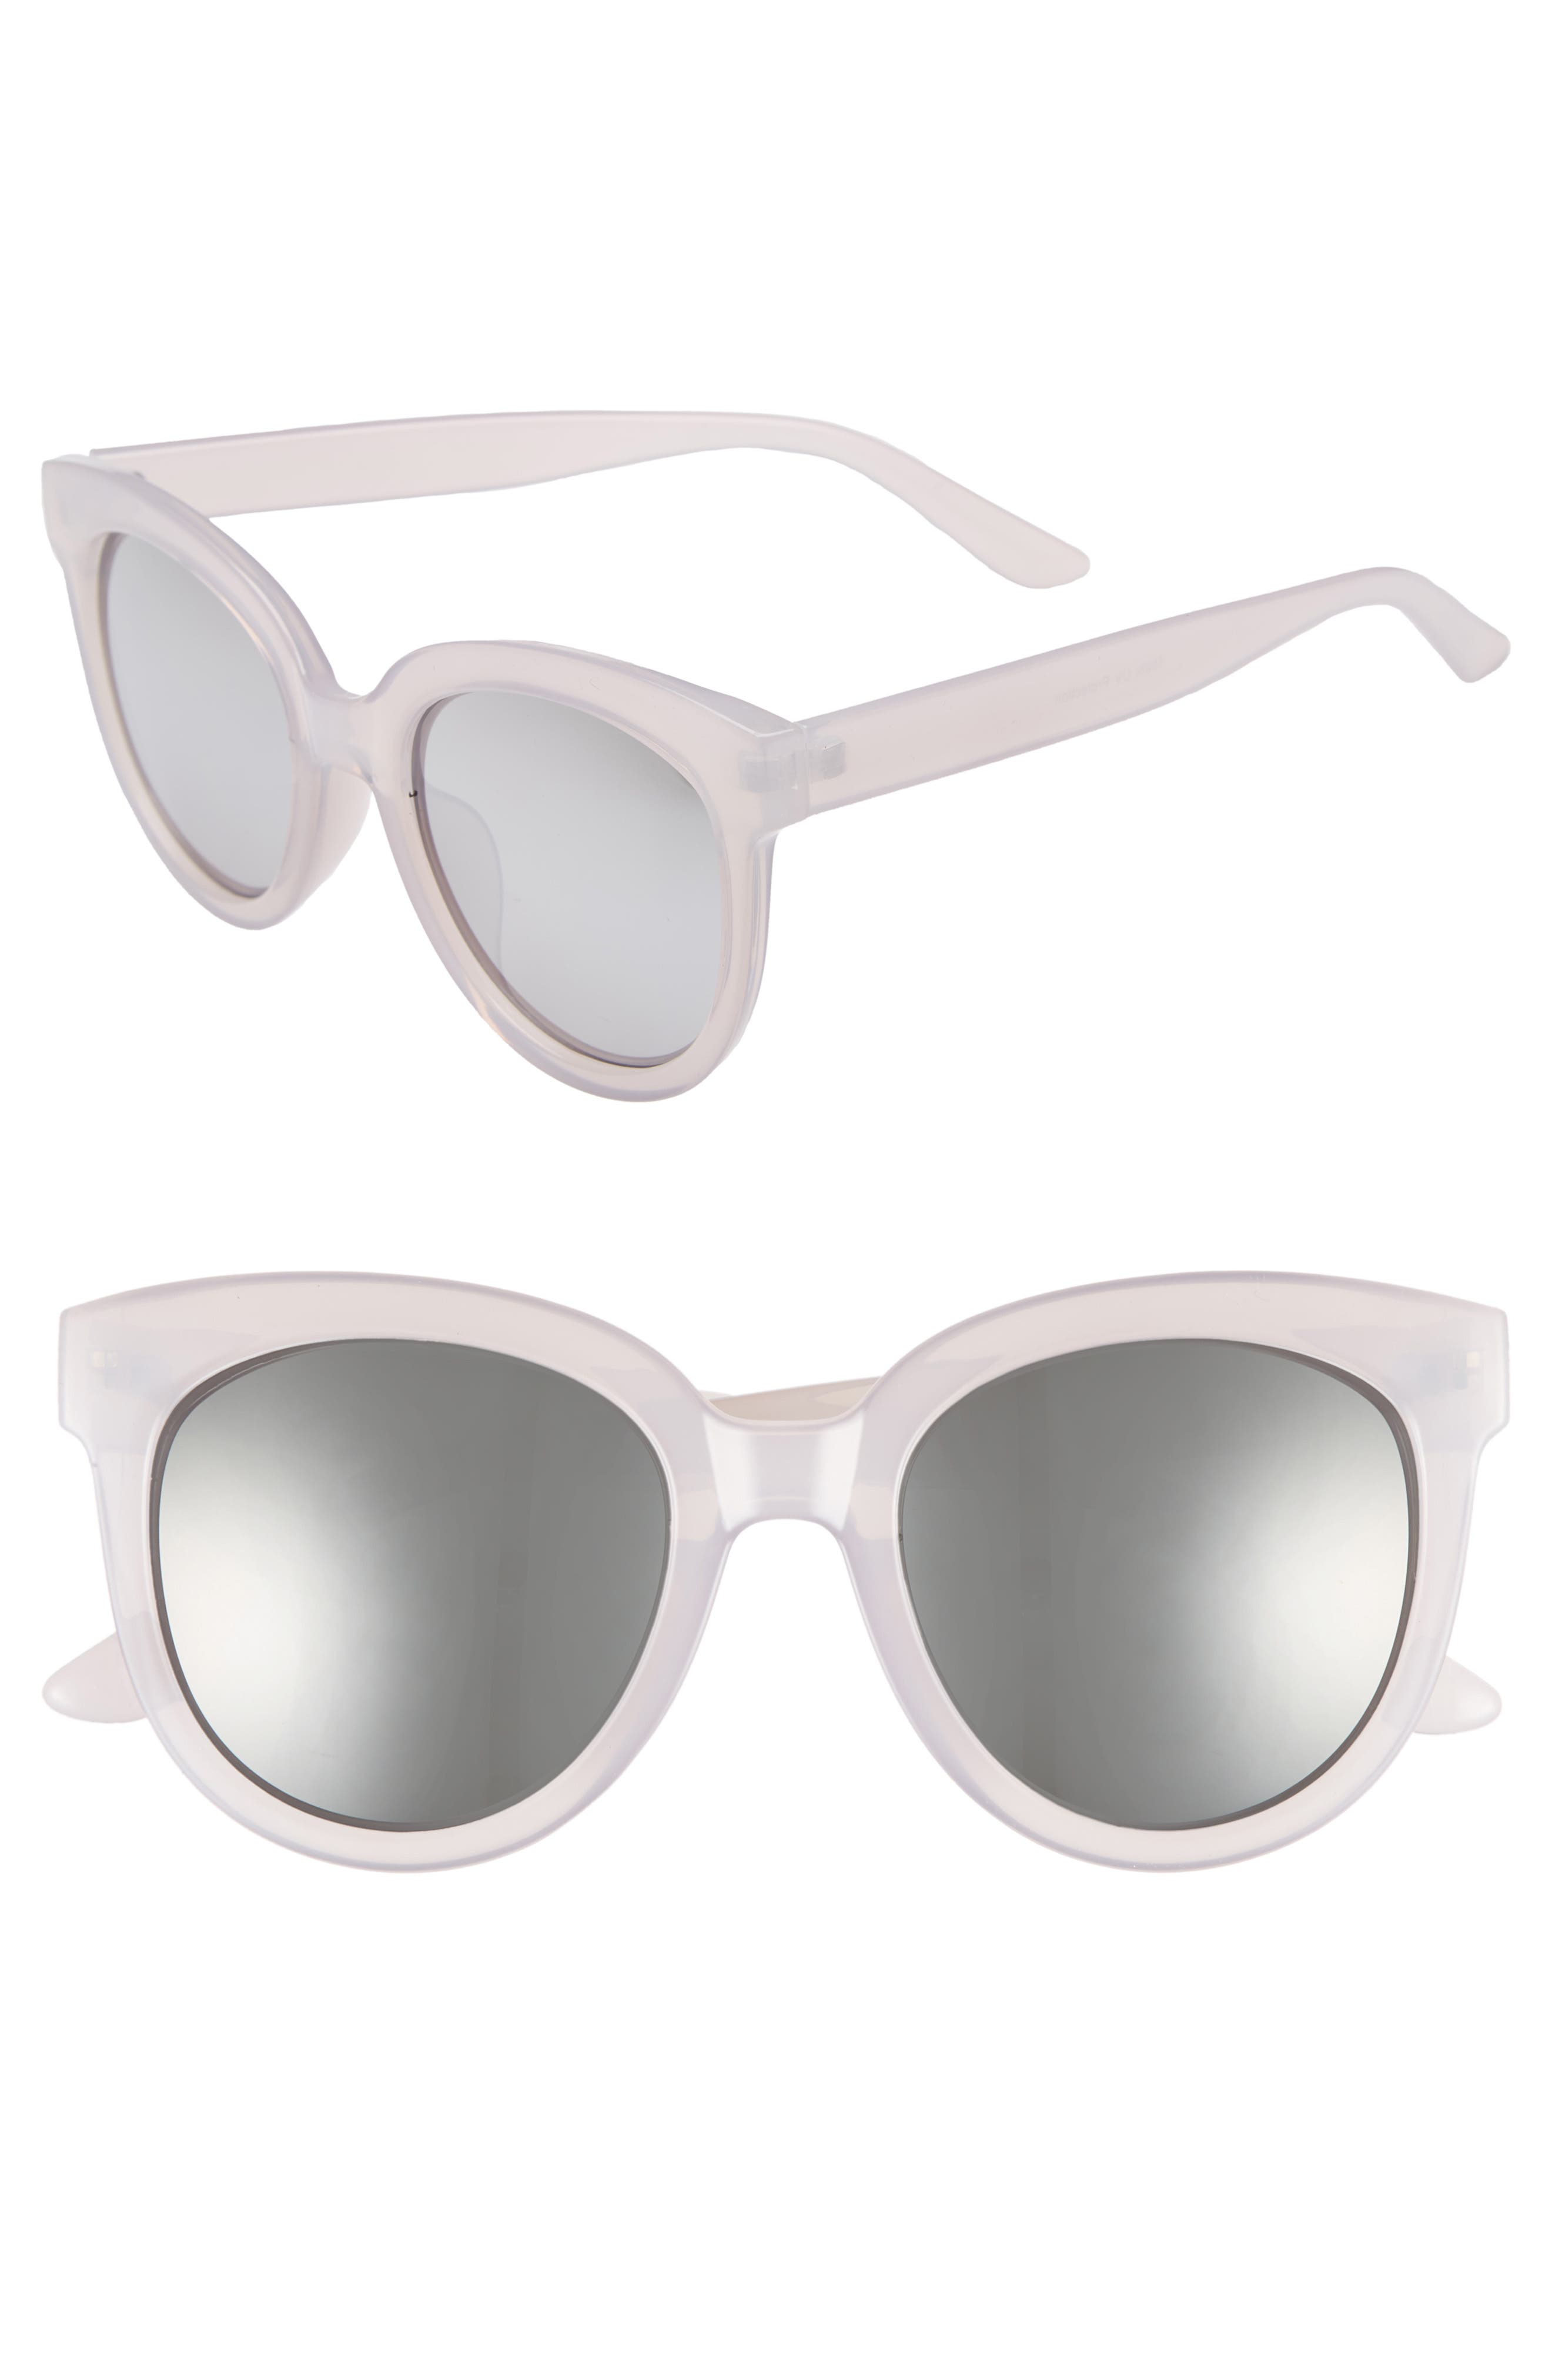 53mm Frosted Cat Eye Sunglasses,                             Main thumbnail 1, color,                             Milky Gray/ Silver